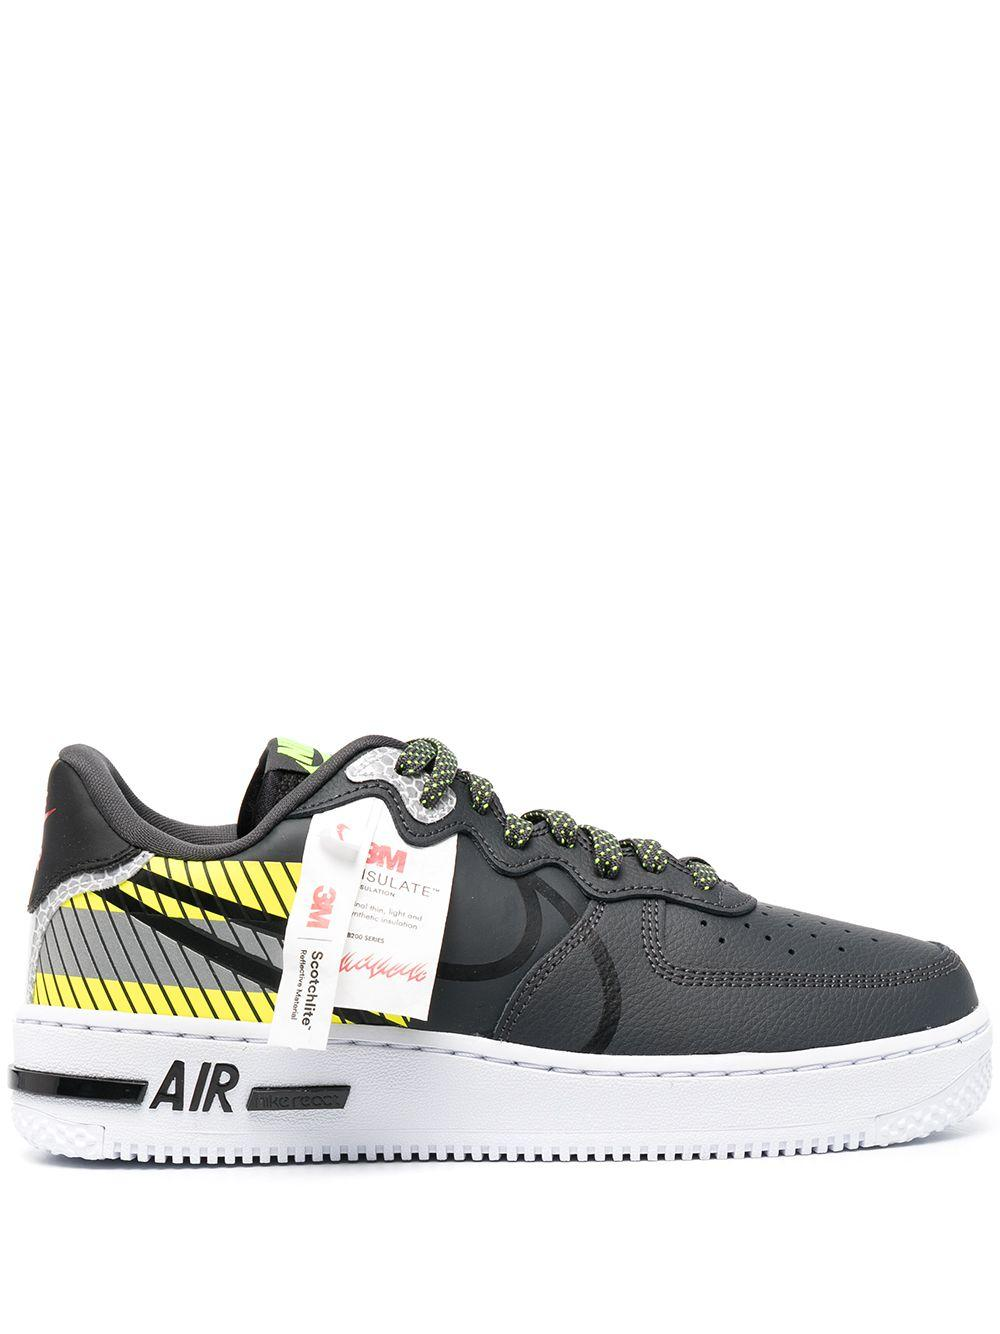 Nike Leather Air Force 1 React Lx 3m Low-top Sneakers in Black for ...